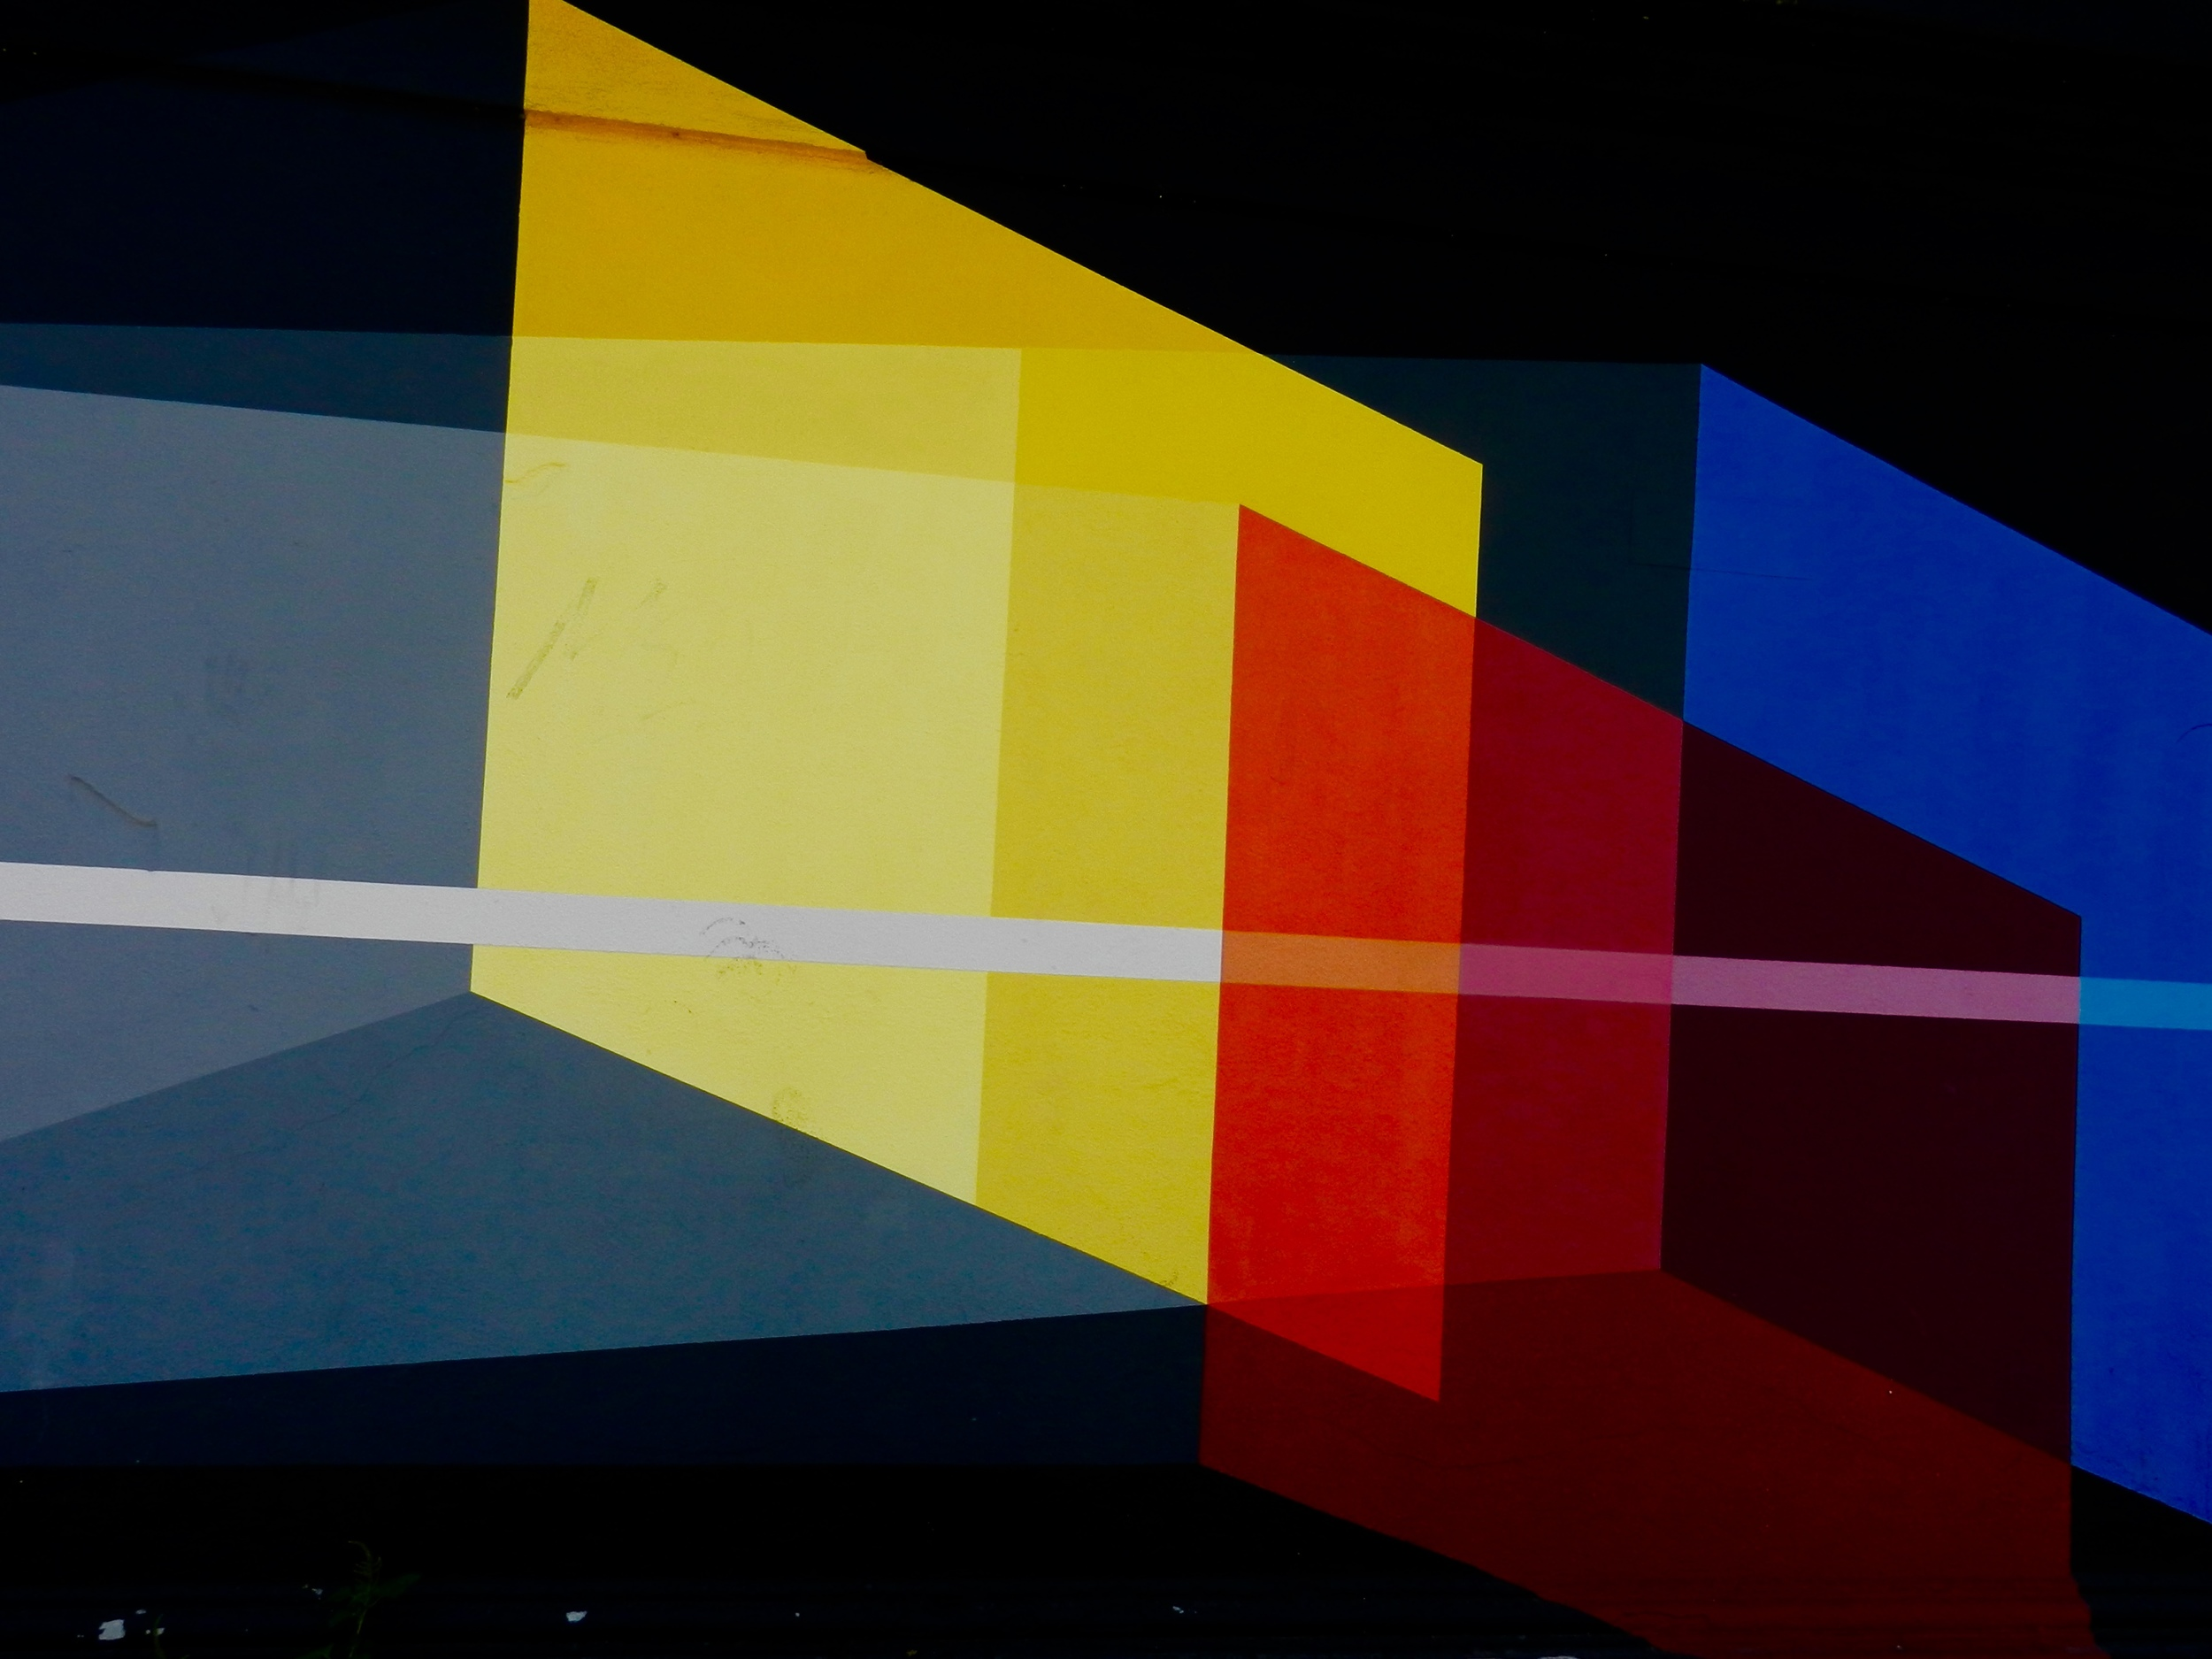 """From Roma Turismo:  """"Derek Bruno installed a mural work curated by Stefano S. Antonelli from 999Contemporary in Testaccio. A seven by four metre work, based on a pure abstract geometric style, where the artist composes using a white line and three squares, from the perspective of the relationship between the objective-subjective, questioning the truth.  The line represents reality, the objective view is on the left, and the subjective on the right, intersecting three """"slices"""" of interaction with reality in basic colours."""""""